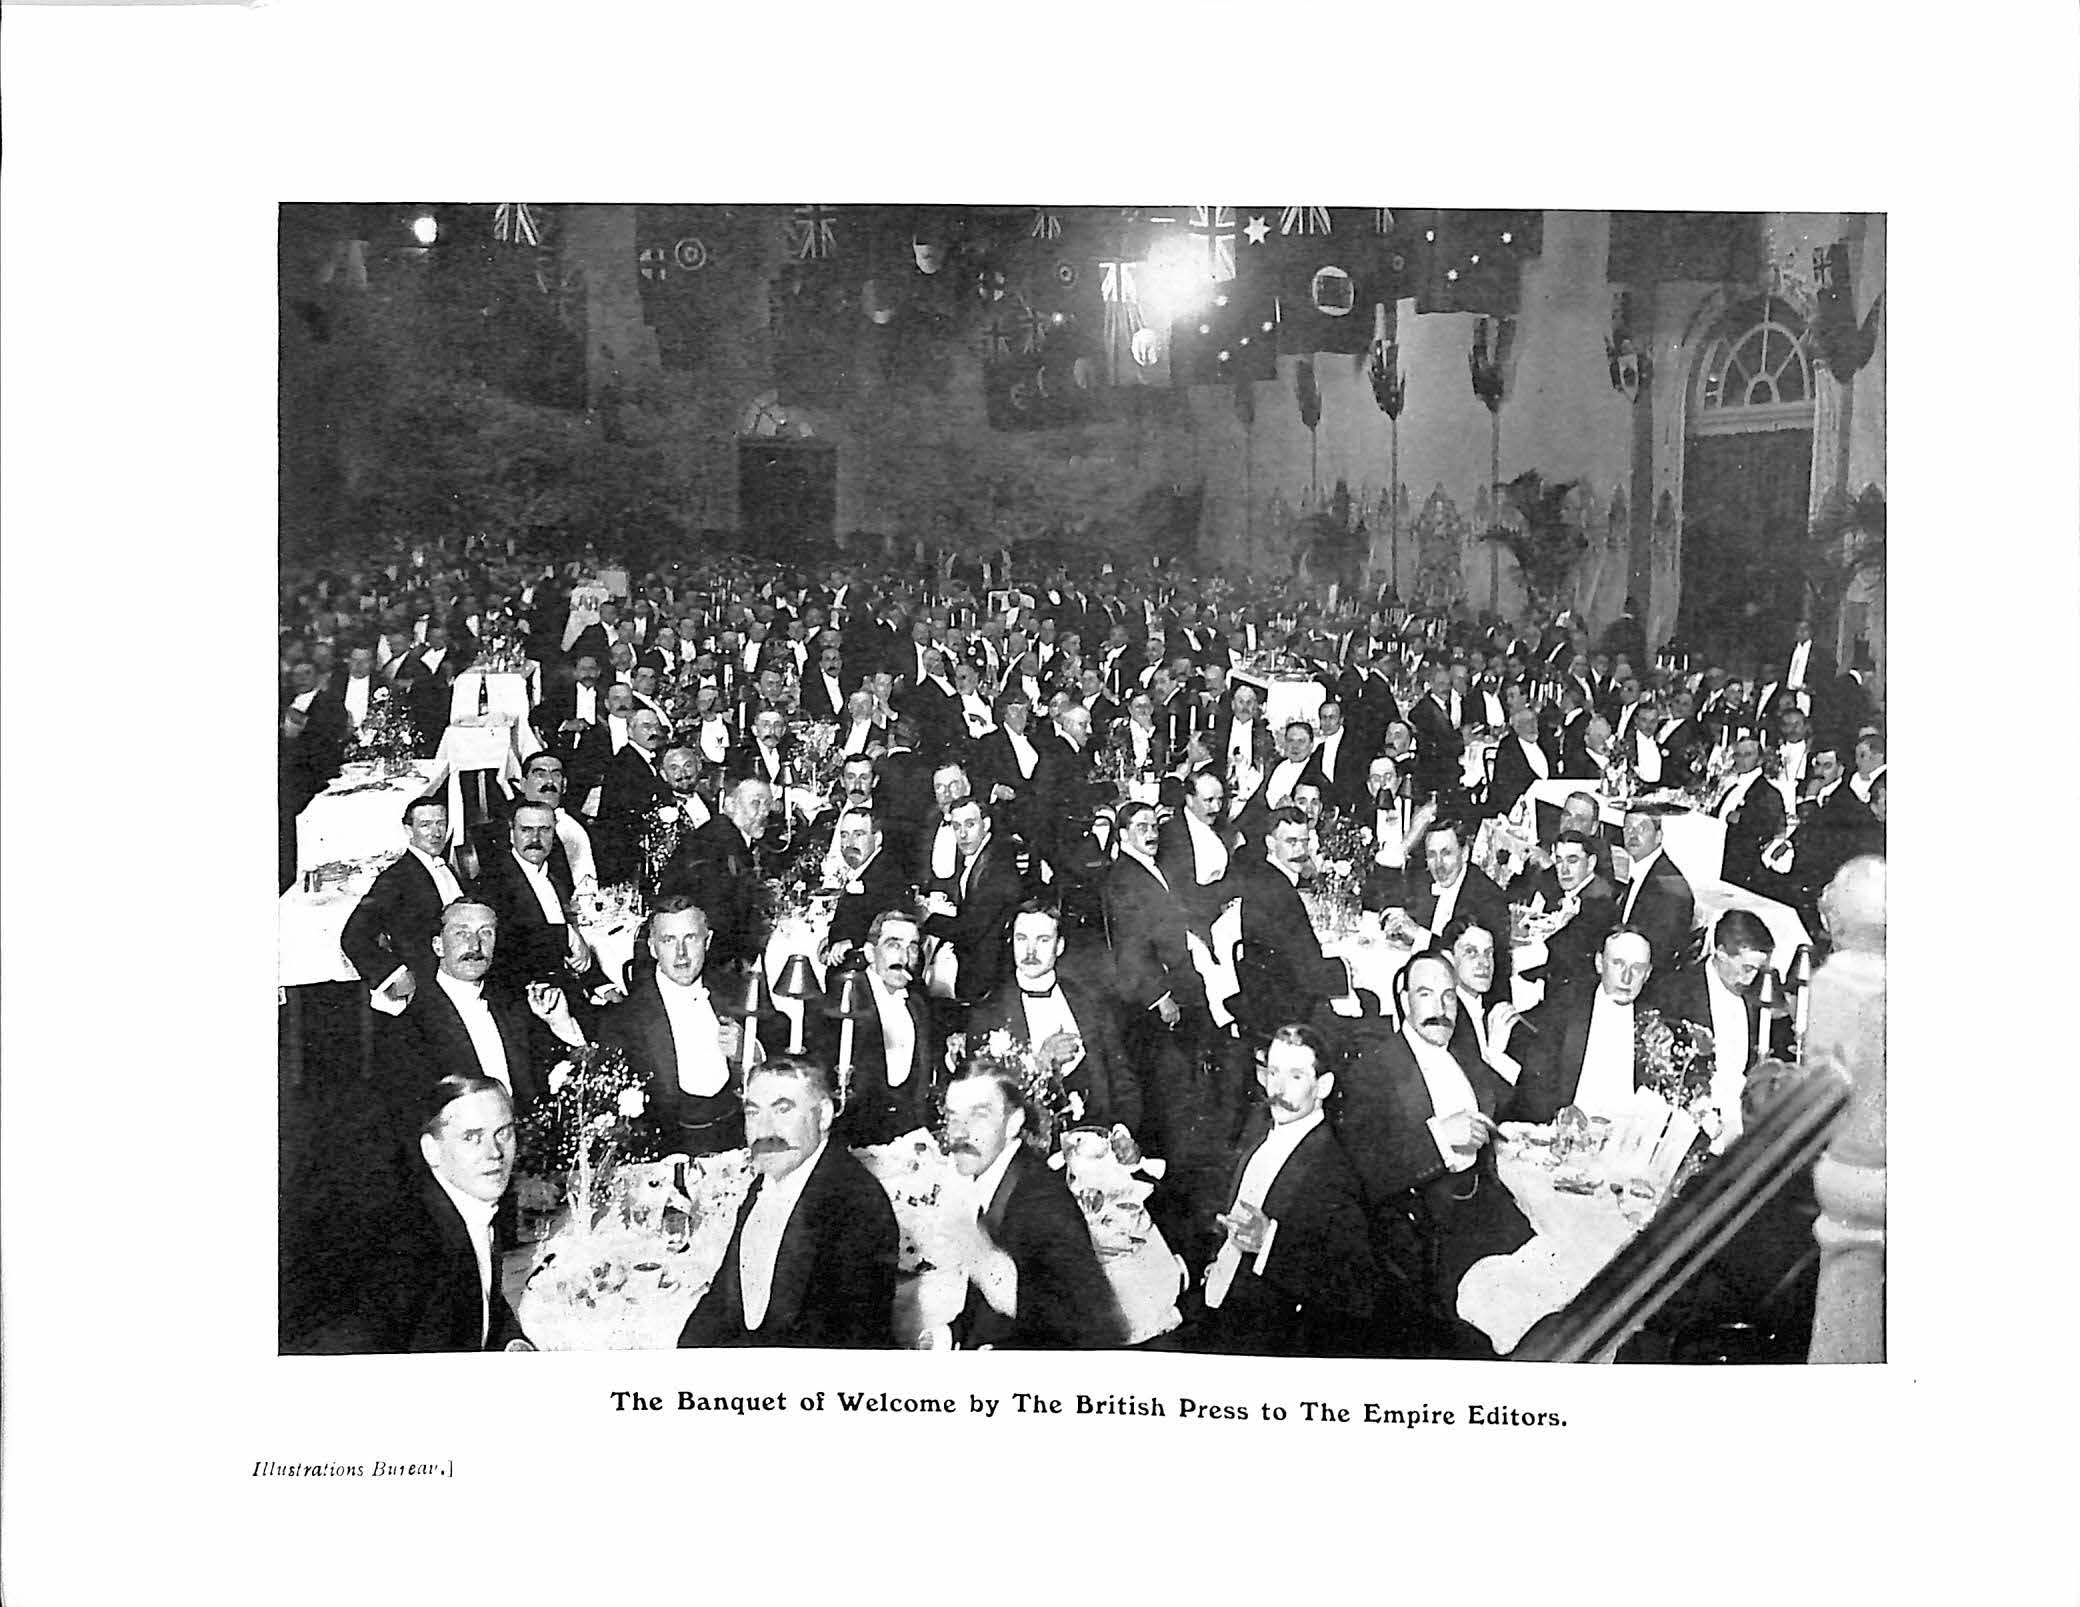 Thomas H. Hardman, ed. pub. (Jun. 05-26, 1909). A PARLIAMENT OF THE PRESS - THE FIRST IMPERIAL PRESS CONFERENCE, 1909, Illustrated, with Preface by The Earl of Rosebery, K.G., p. 8a. London: Horace Marshall & Son.